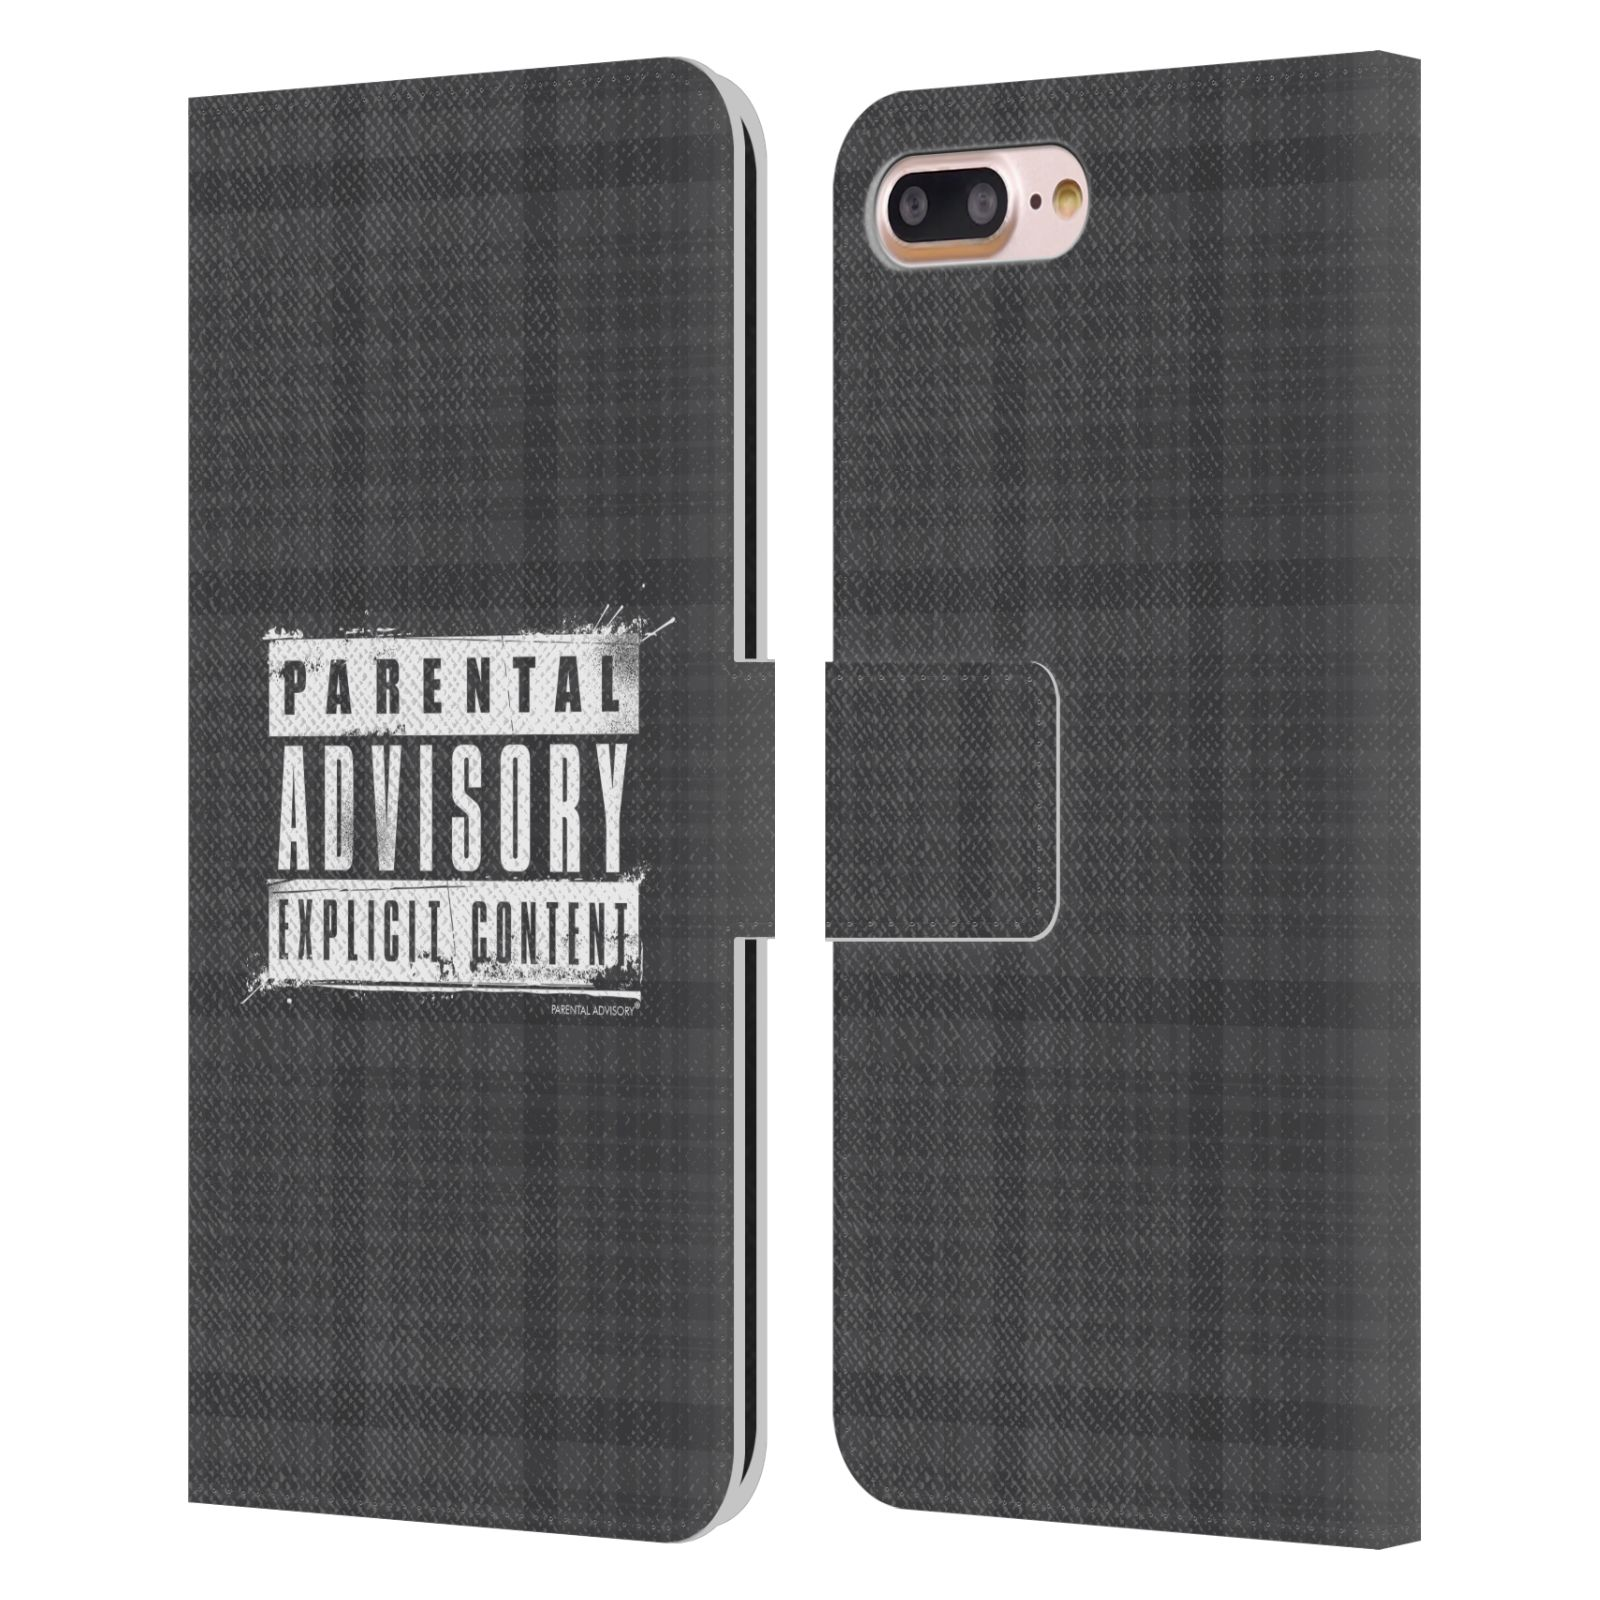 Offizielle Parental Advisory Punk Rock Schottentuch Brieftasche Hülle aus Leder für Apple iPhone 7 Plus / iPhone 8 Plus